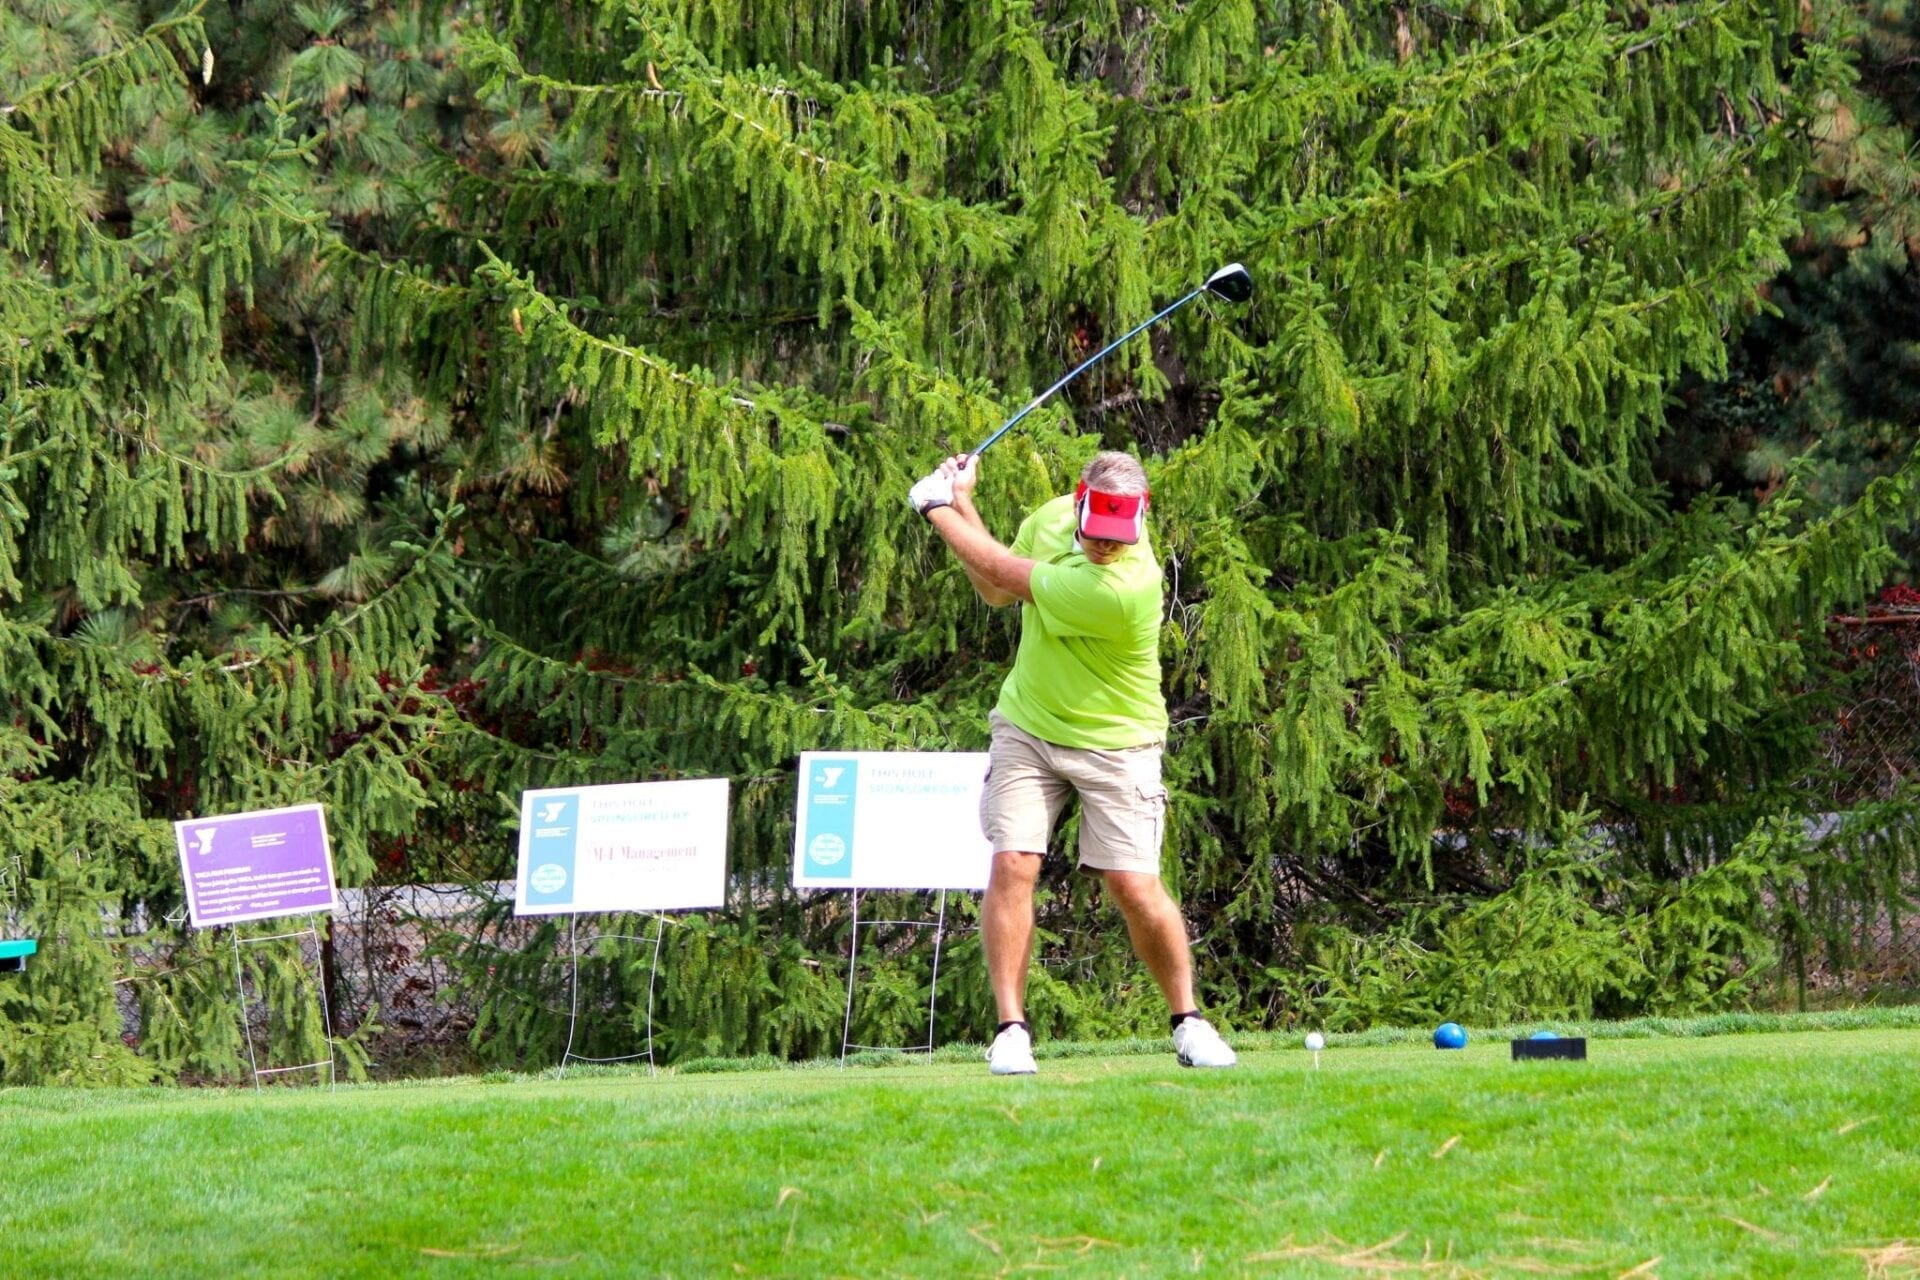 Tee Off For Teens golfer swinging at ball